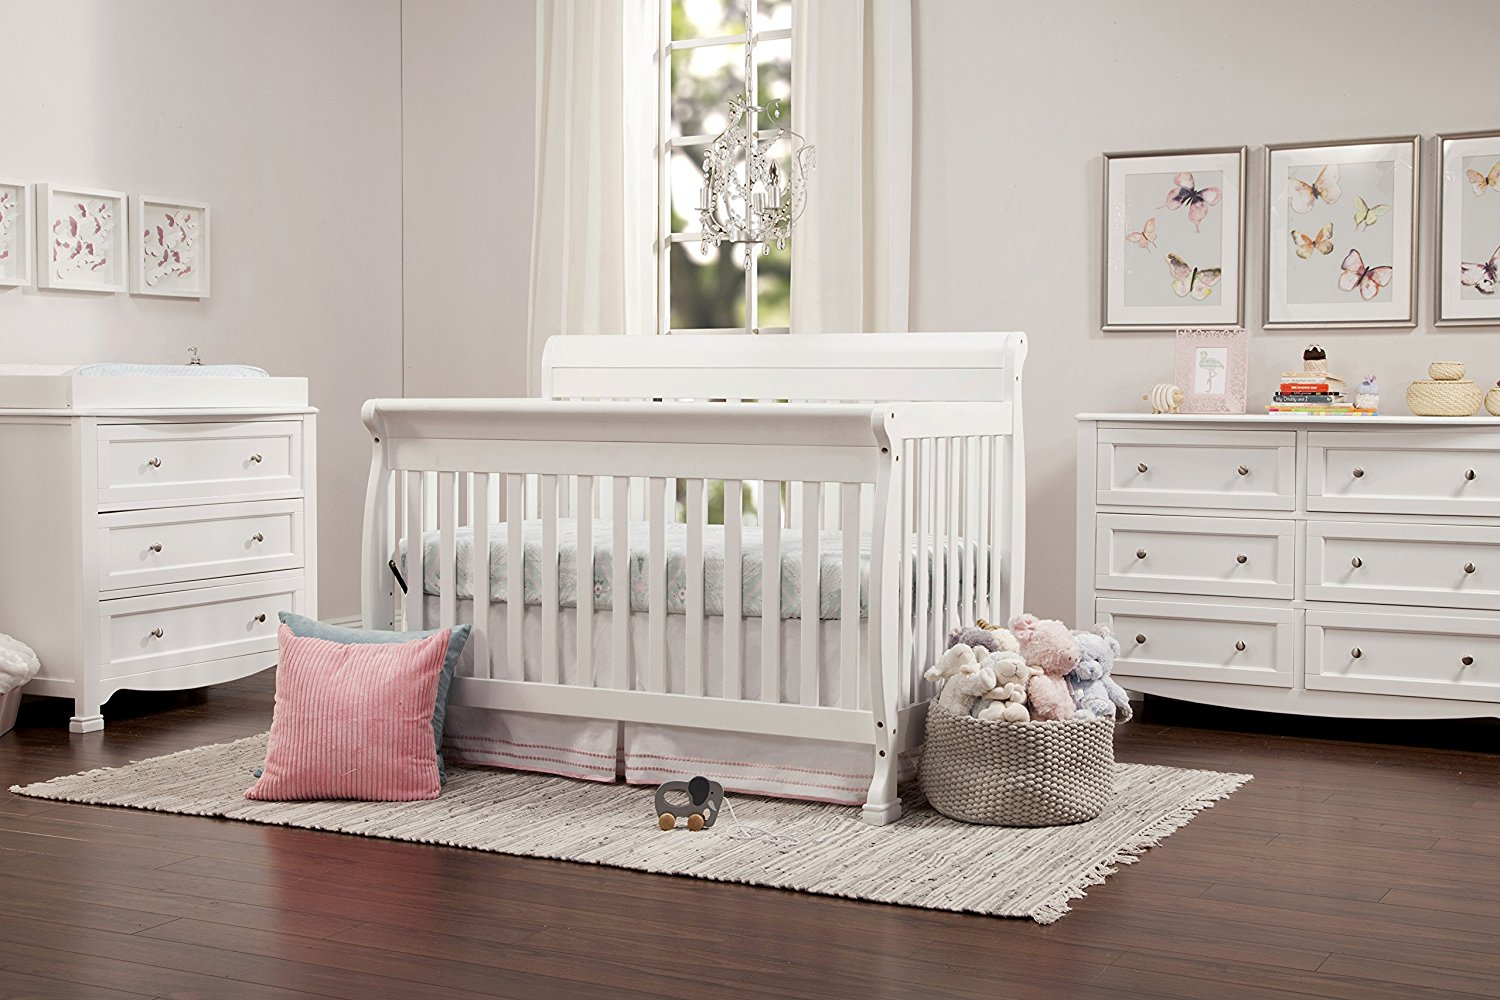 How To A Safe Crib Frys